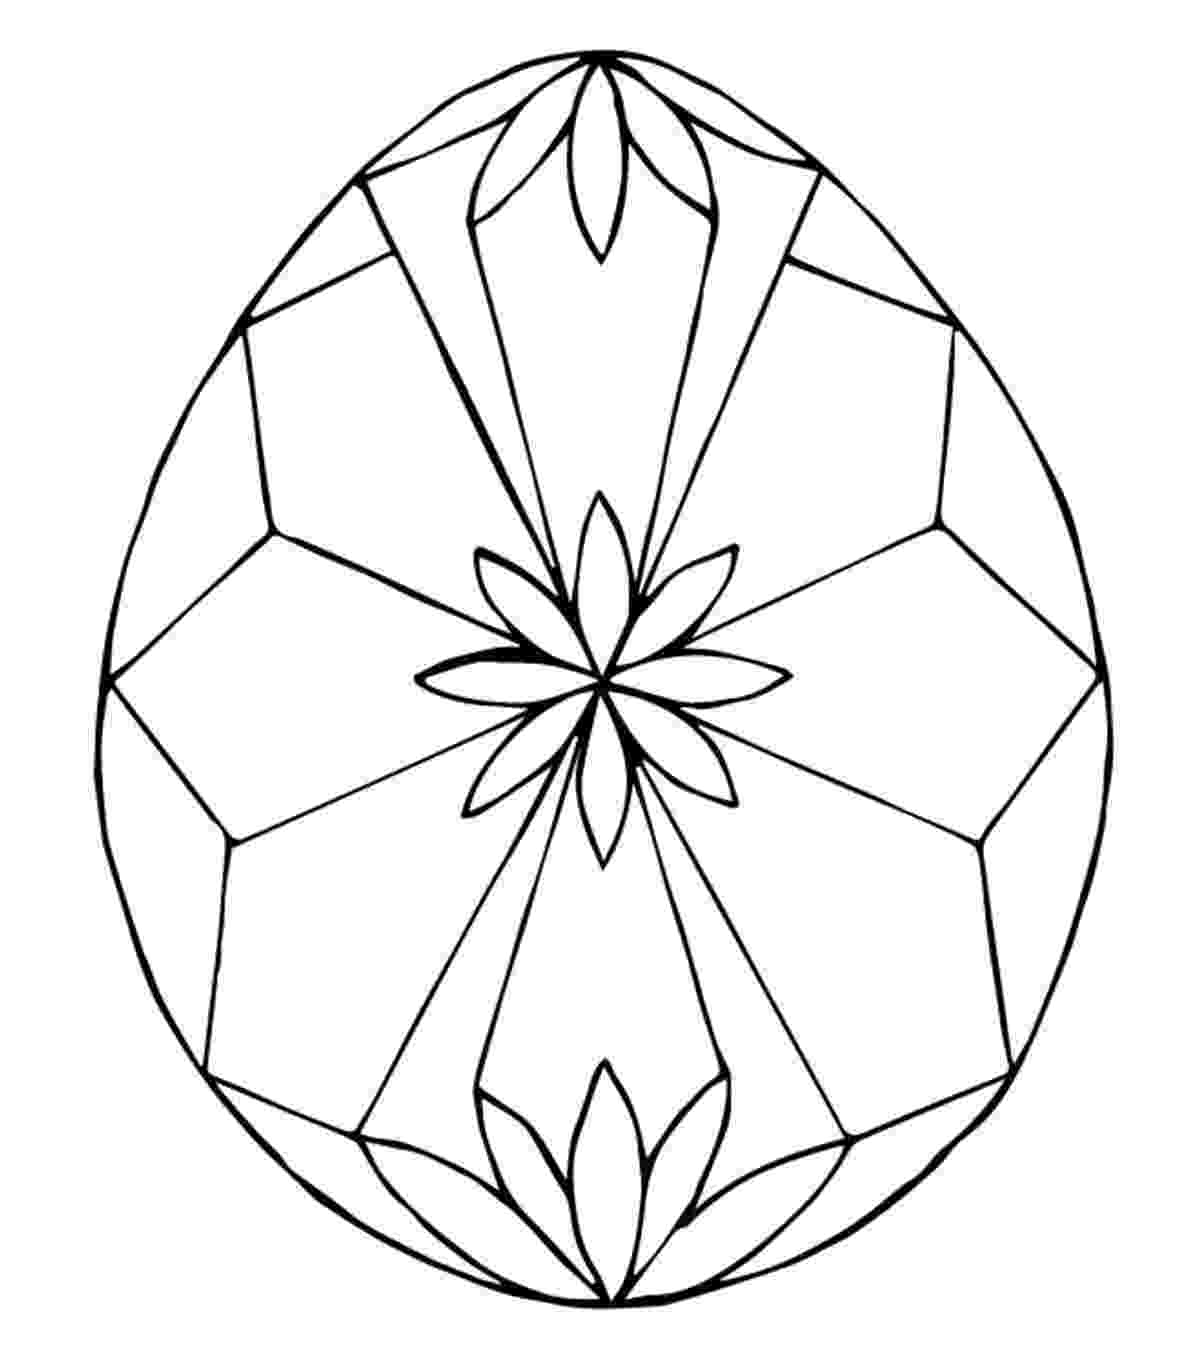 patterned coloring pages swirl pattern coloring page free printable coloring pages pages coloring patterned